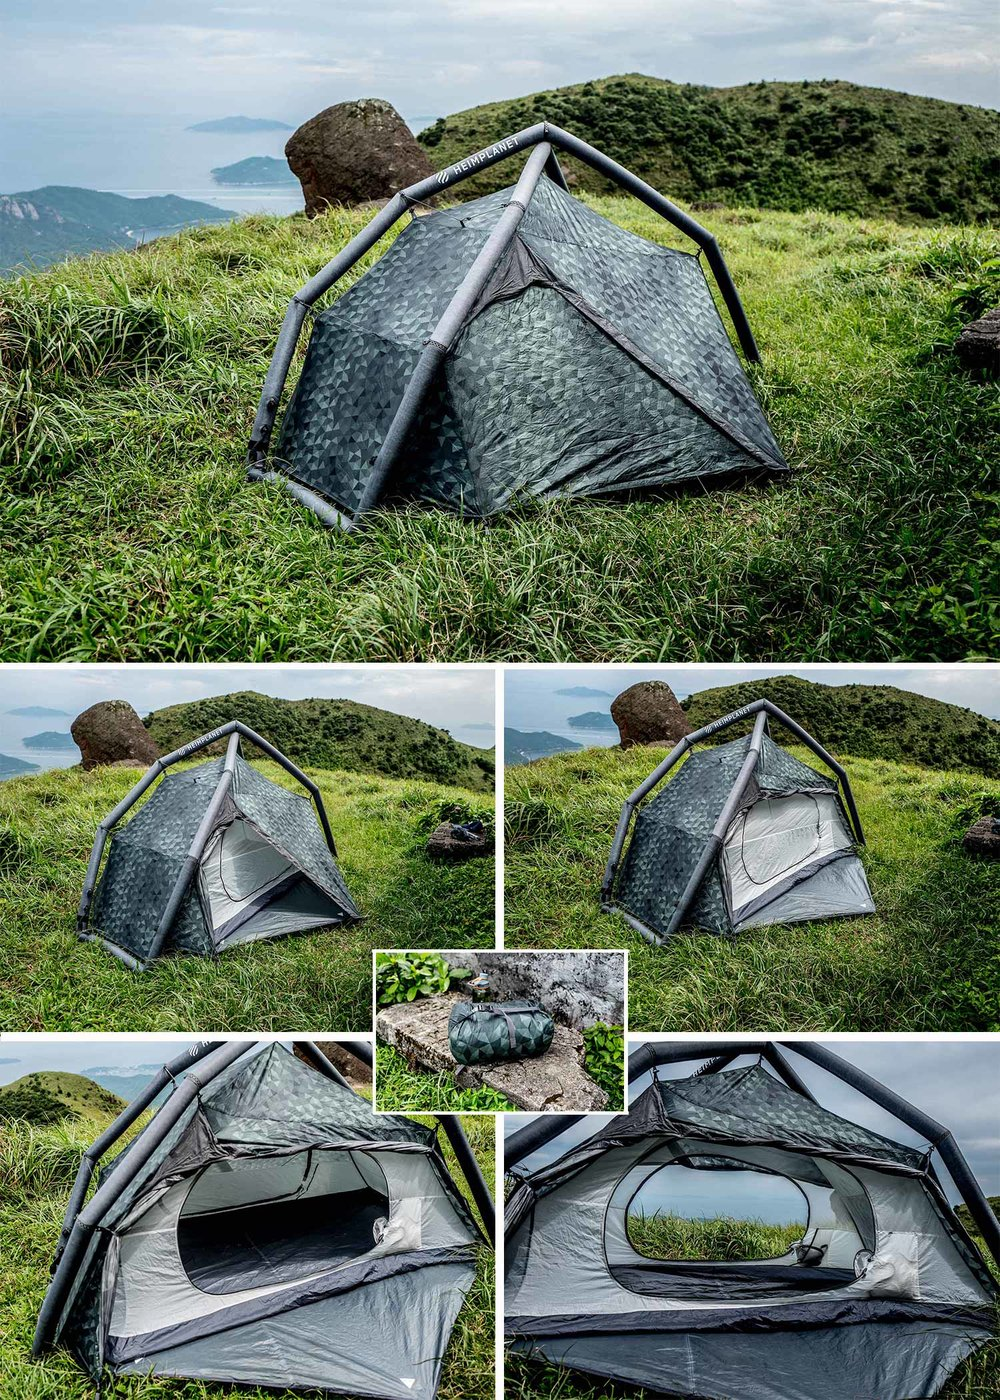 Heimplanet Fistral - Probably the most controversial and at the same time coolest bit of gear I own are my Heimplanet tents.  Traditionalists will complain that inflatable frames can't be reliable, ultra lighters will scoff at the 5lbs carry weight, but I guarantee anyone making these complaints hasn't tried these tents as a regular sleep system. I have used this consistently with great results.  It packs up and unloads with groundsheet, rainfly, and inner mesh all attached and inflates in about 1-2 minutes.  This means that you can set it up in pouring rain and the inside will be bone dry.  The inflatable frame is also great in high wind as there is a little give and they just snap back into place, you'll never break them. I've even forgot the pump on one occasion and was able to blow it up manually with a little bit of patience and there is a multi chamber technology meaning you'll never have to worry about punctures.  The only small criticism I have is that it squeaks a bit when you pump it up.  Love this tent and highly recommend it! Buy Fistral